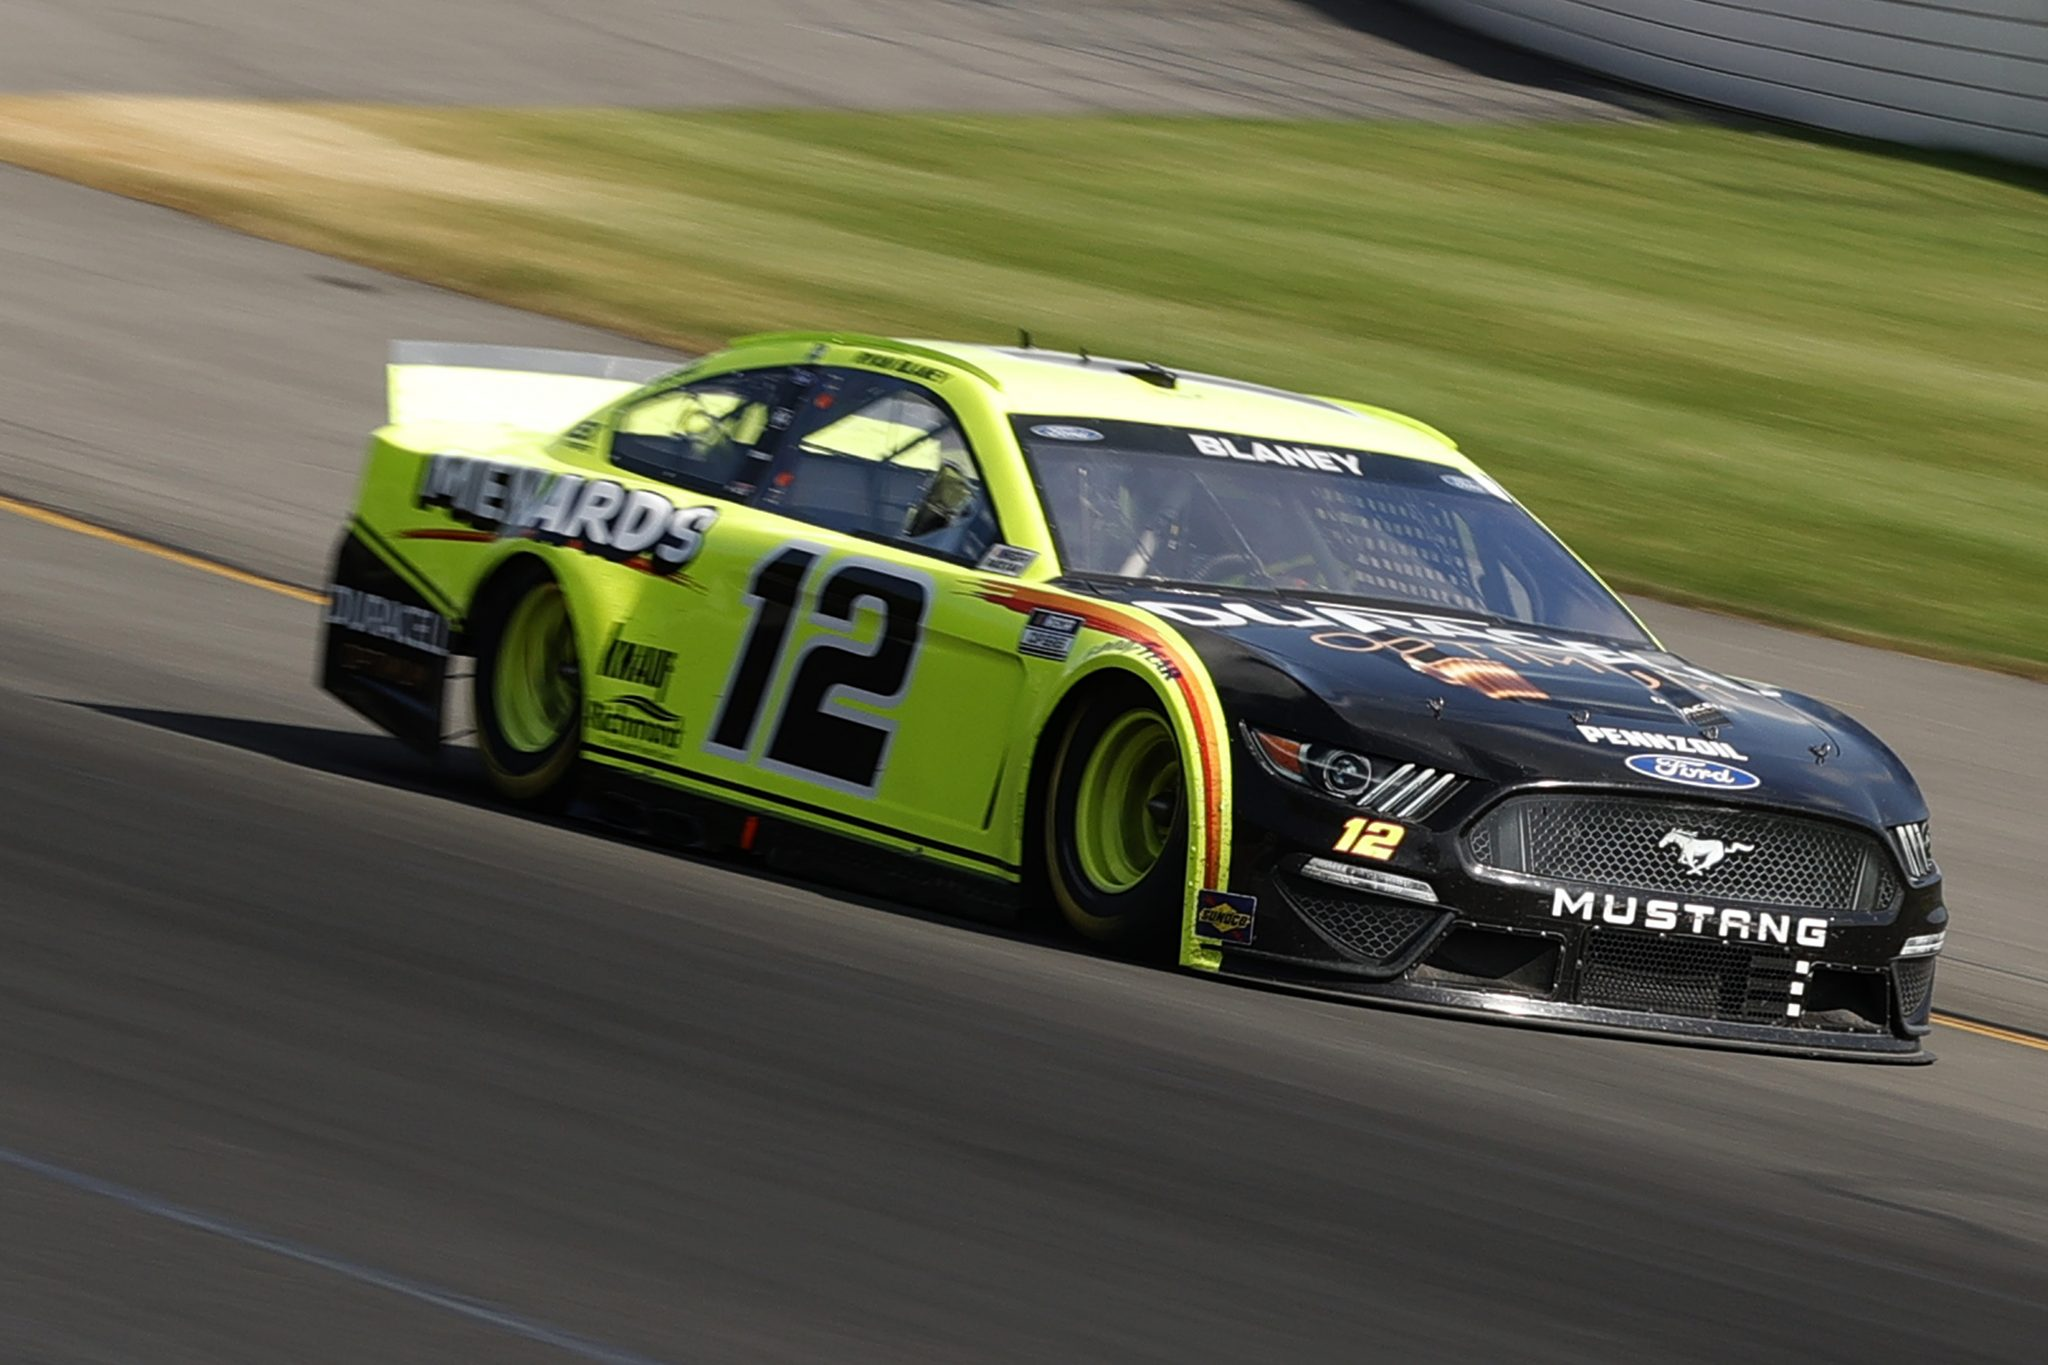 LONG POND, PENNSYLVANIA - JUNE 27: Ryan Blaney, driver of the #12 Menards/Duracell Ford, drives during the NASCAR Cup Series Explore the Pocono Mountains 350 at Pocono Raceway on June 27, 2021 in Long Pond, Pennsylvania. (Photo by Tim Nwachukwu/Getty Images) | Getty Images